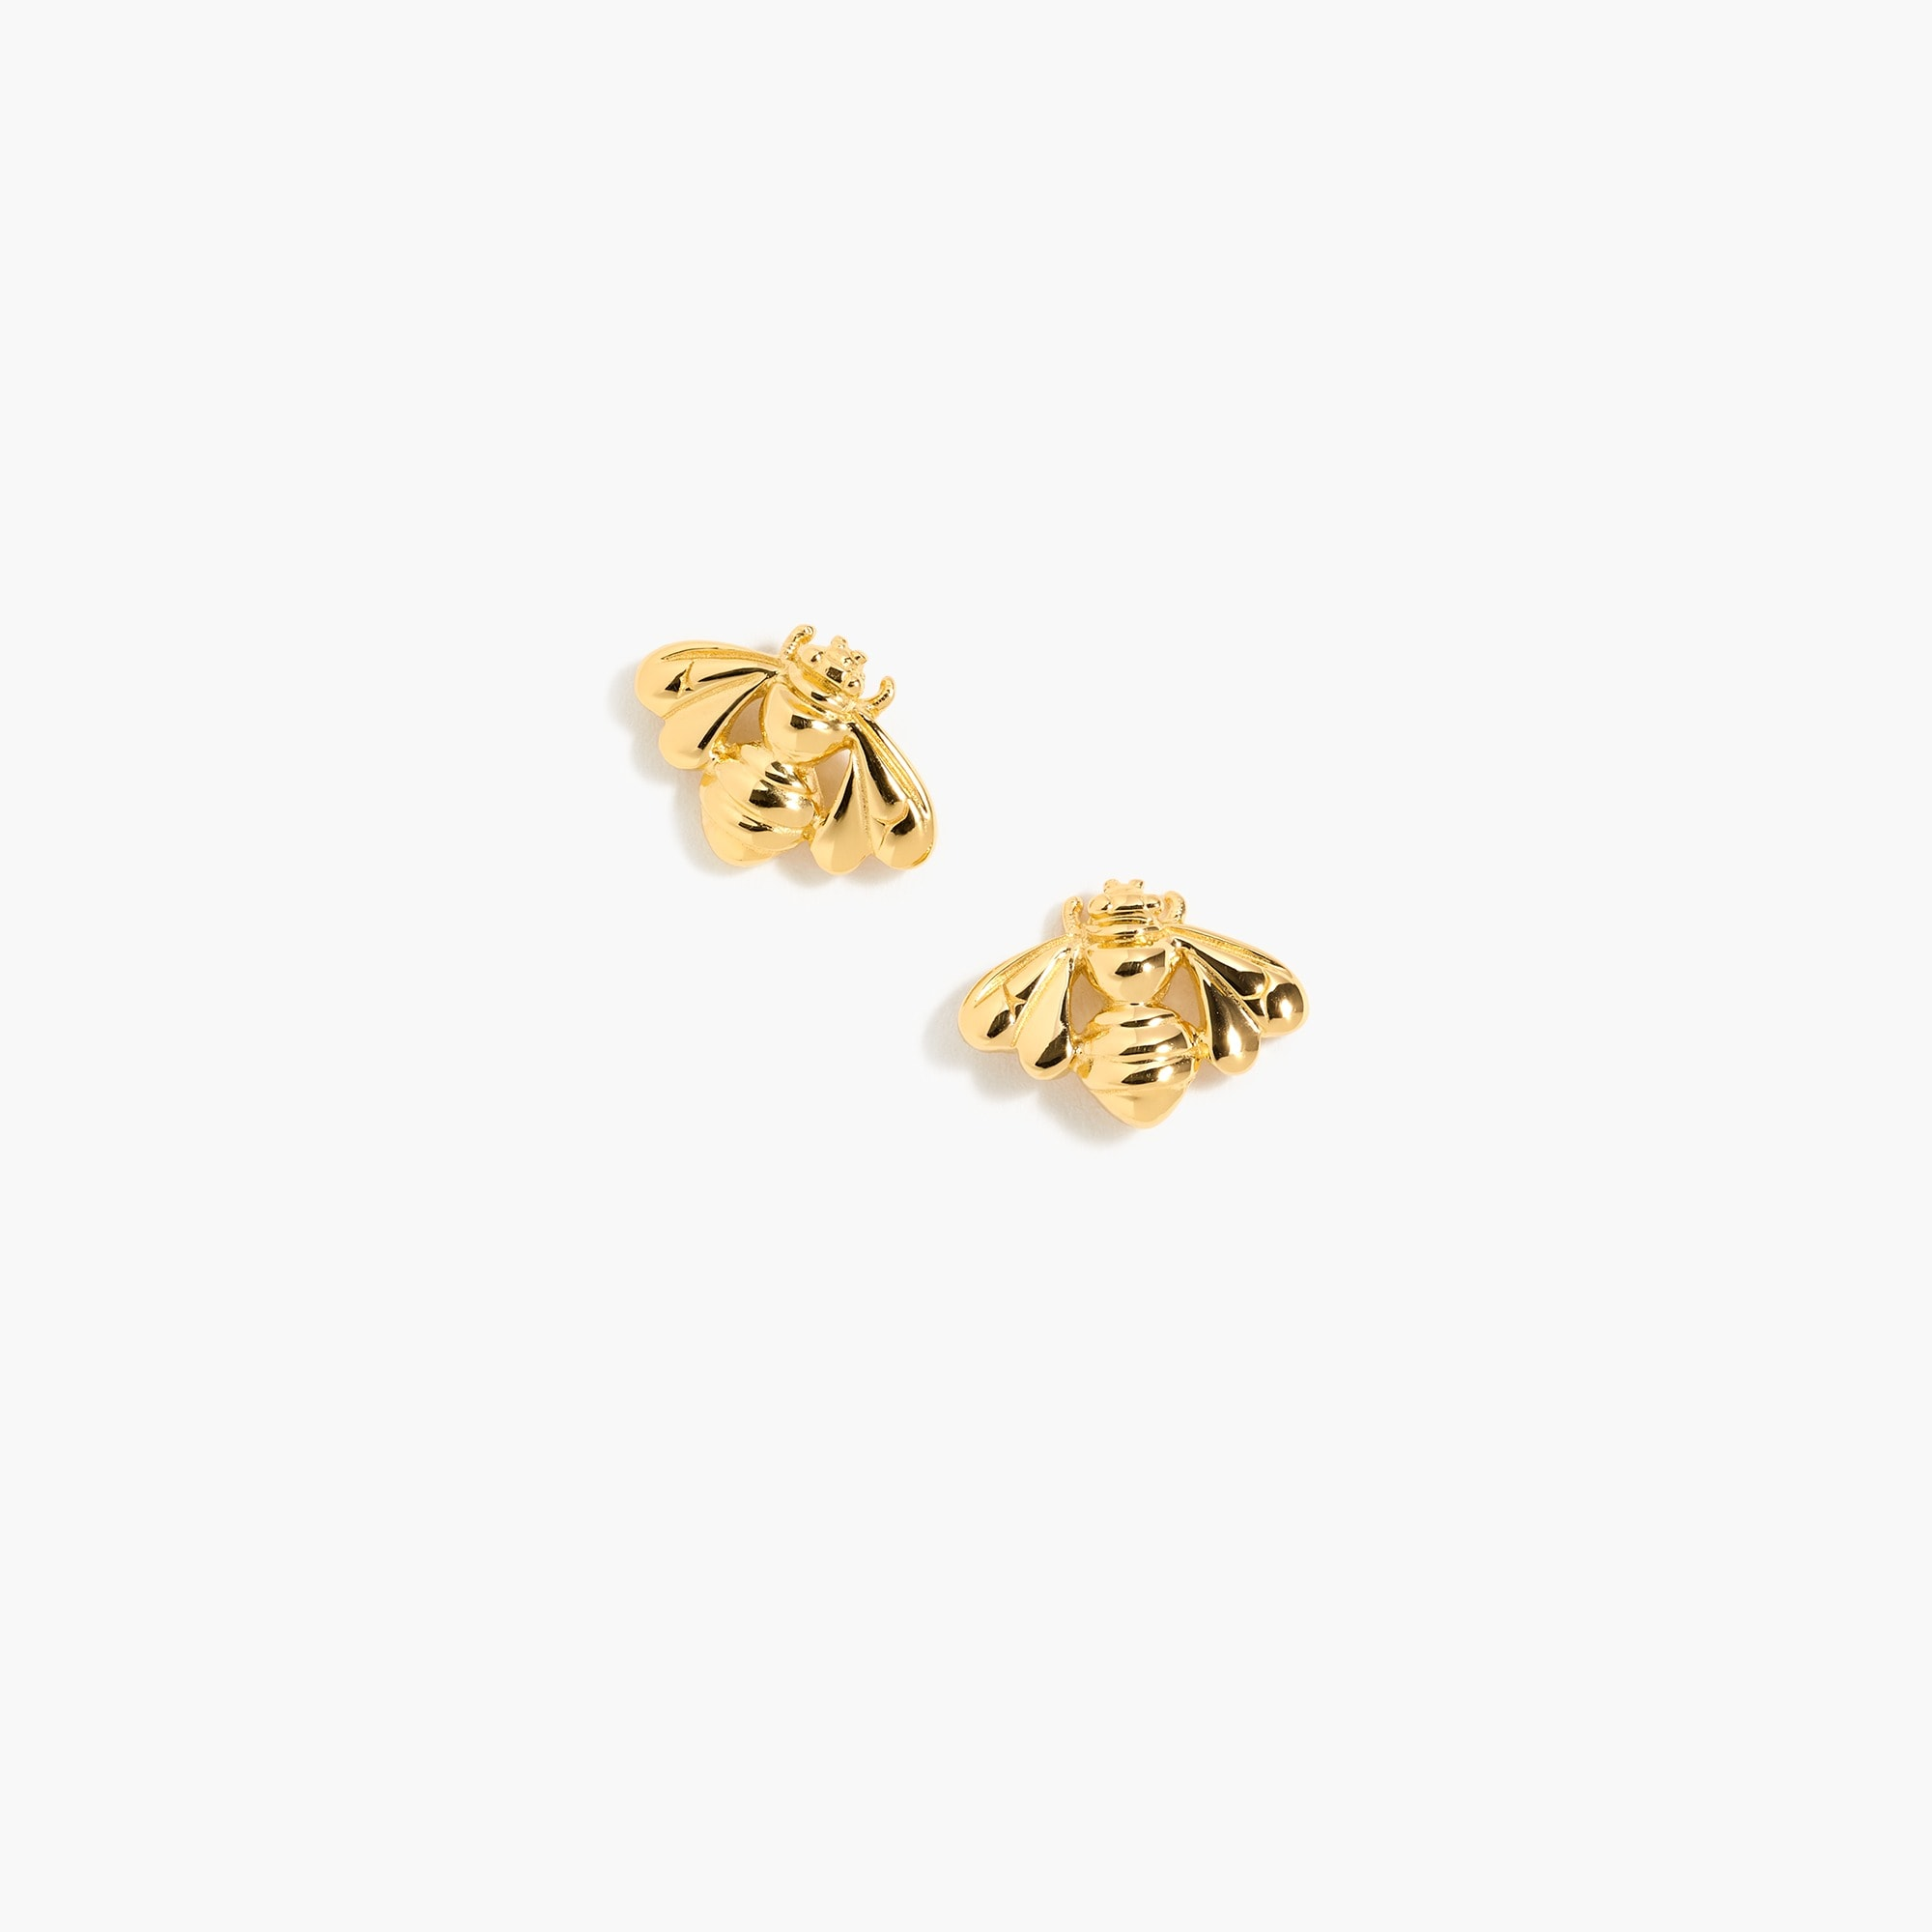 Image 1 for Demi-fine 14k gold-plated bee earrings